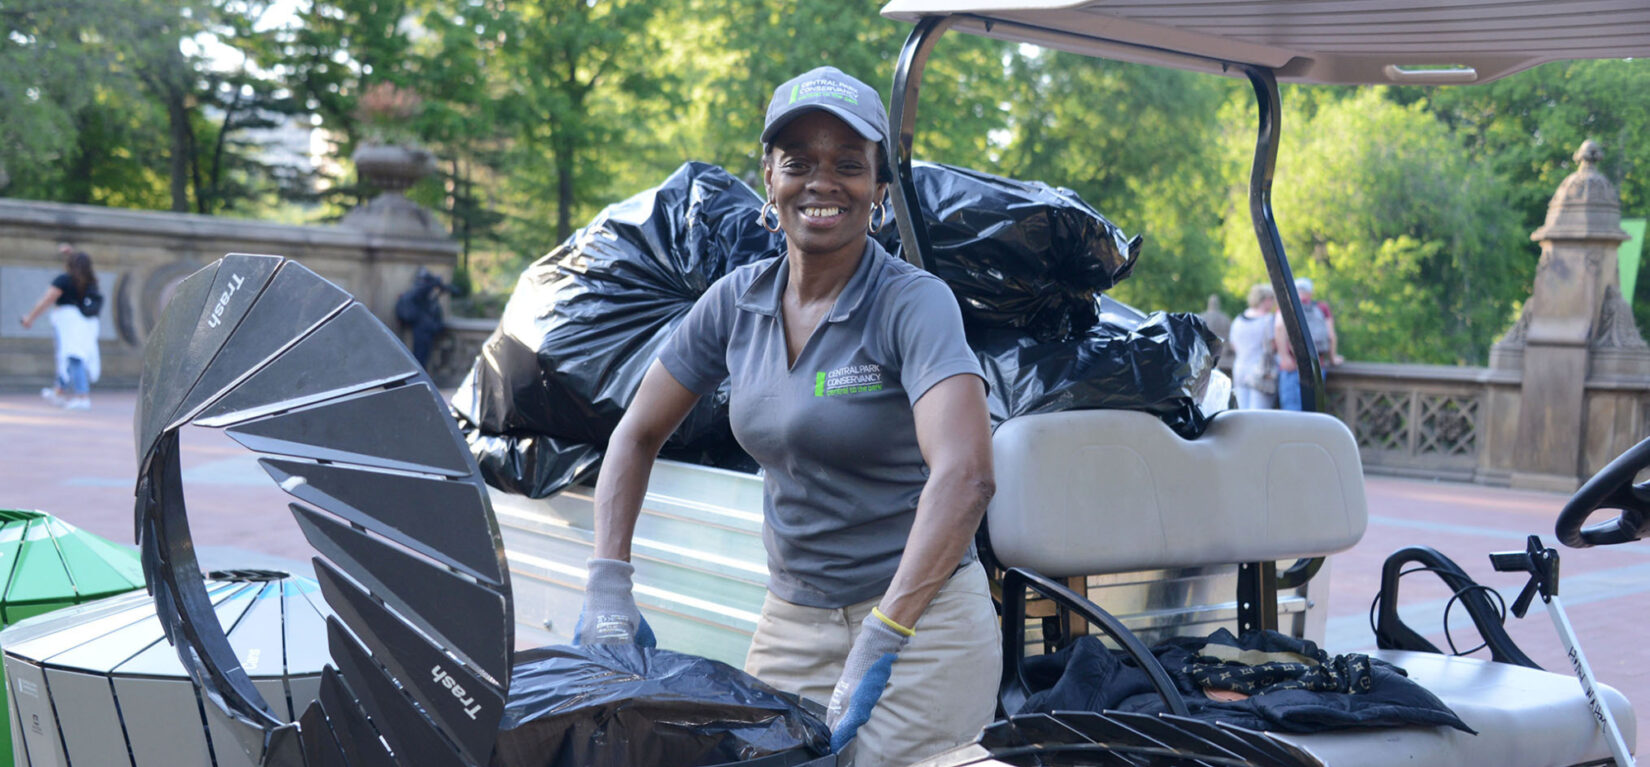 How We Keep Central Park Clean